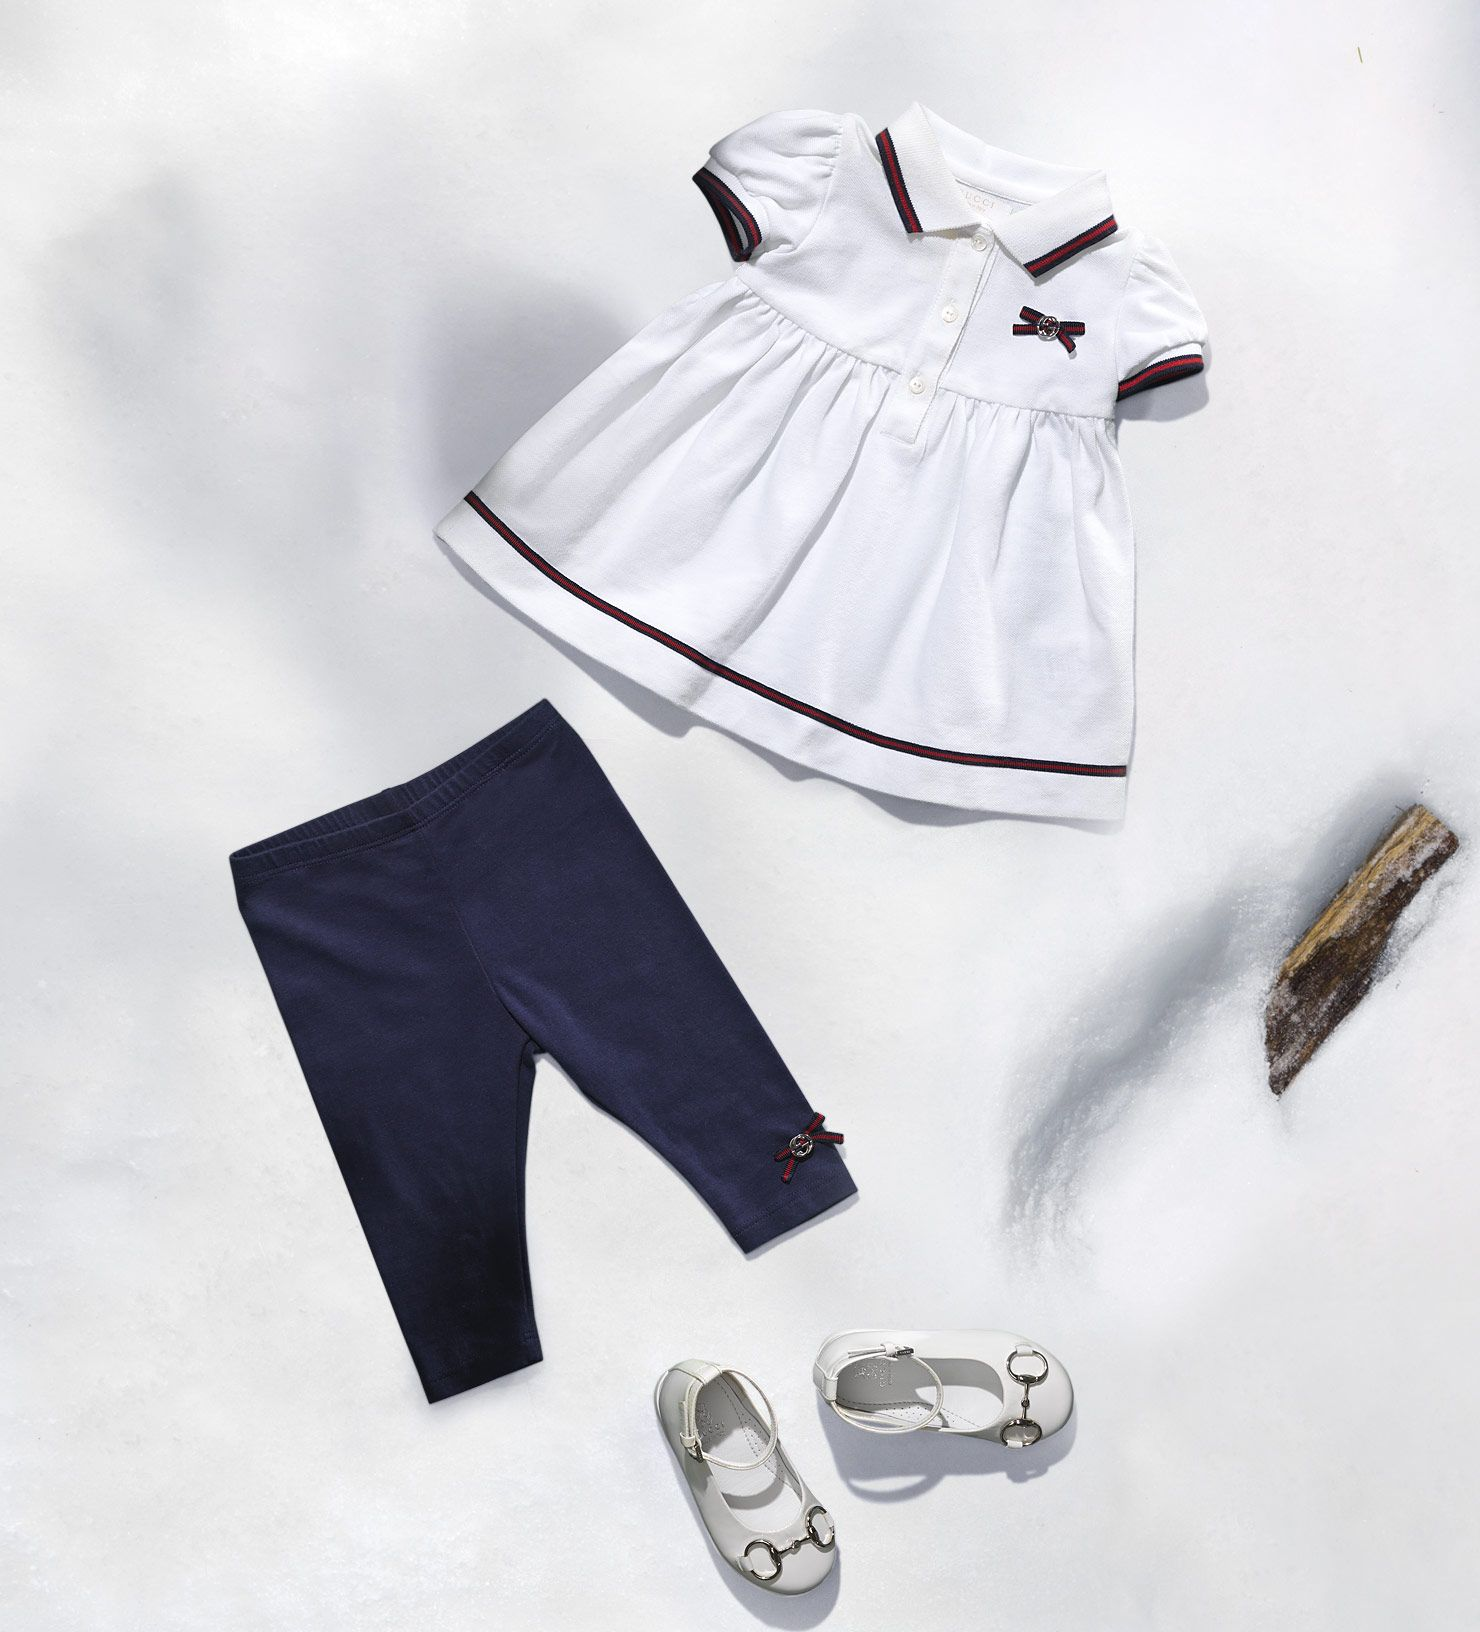 gucci baby clothes baby style and fashion Pinterest